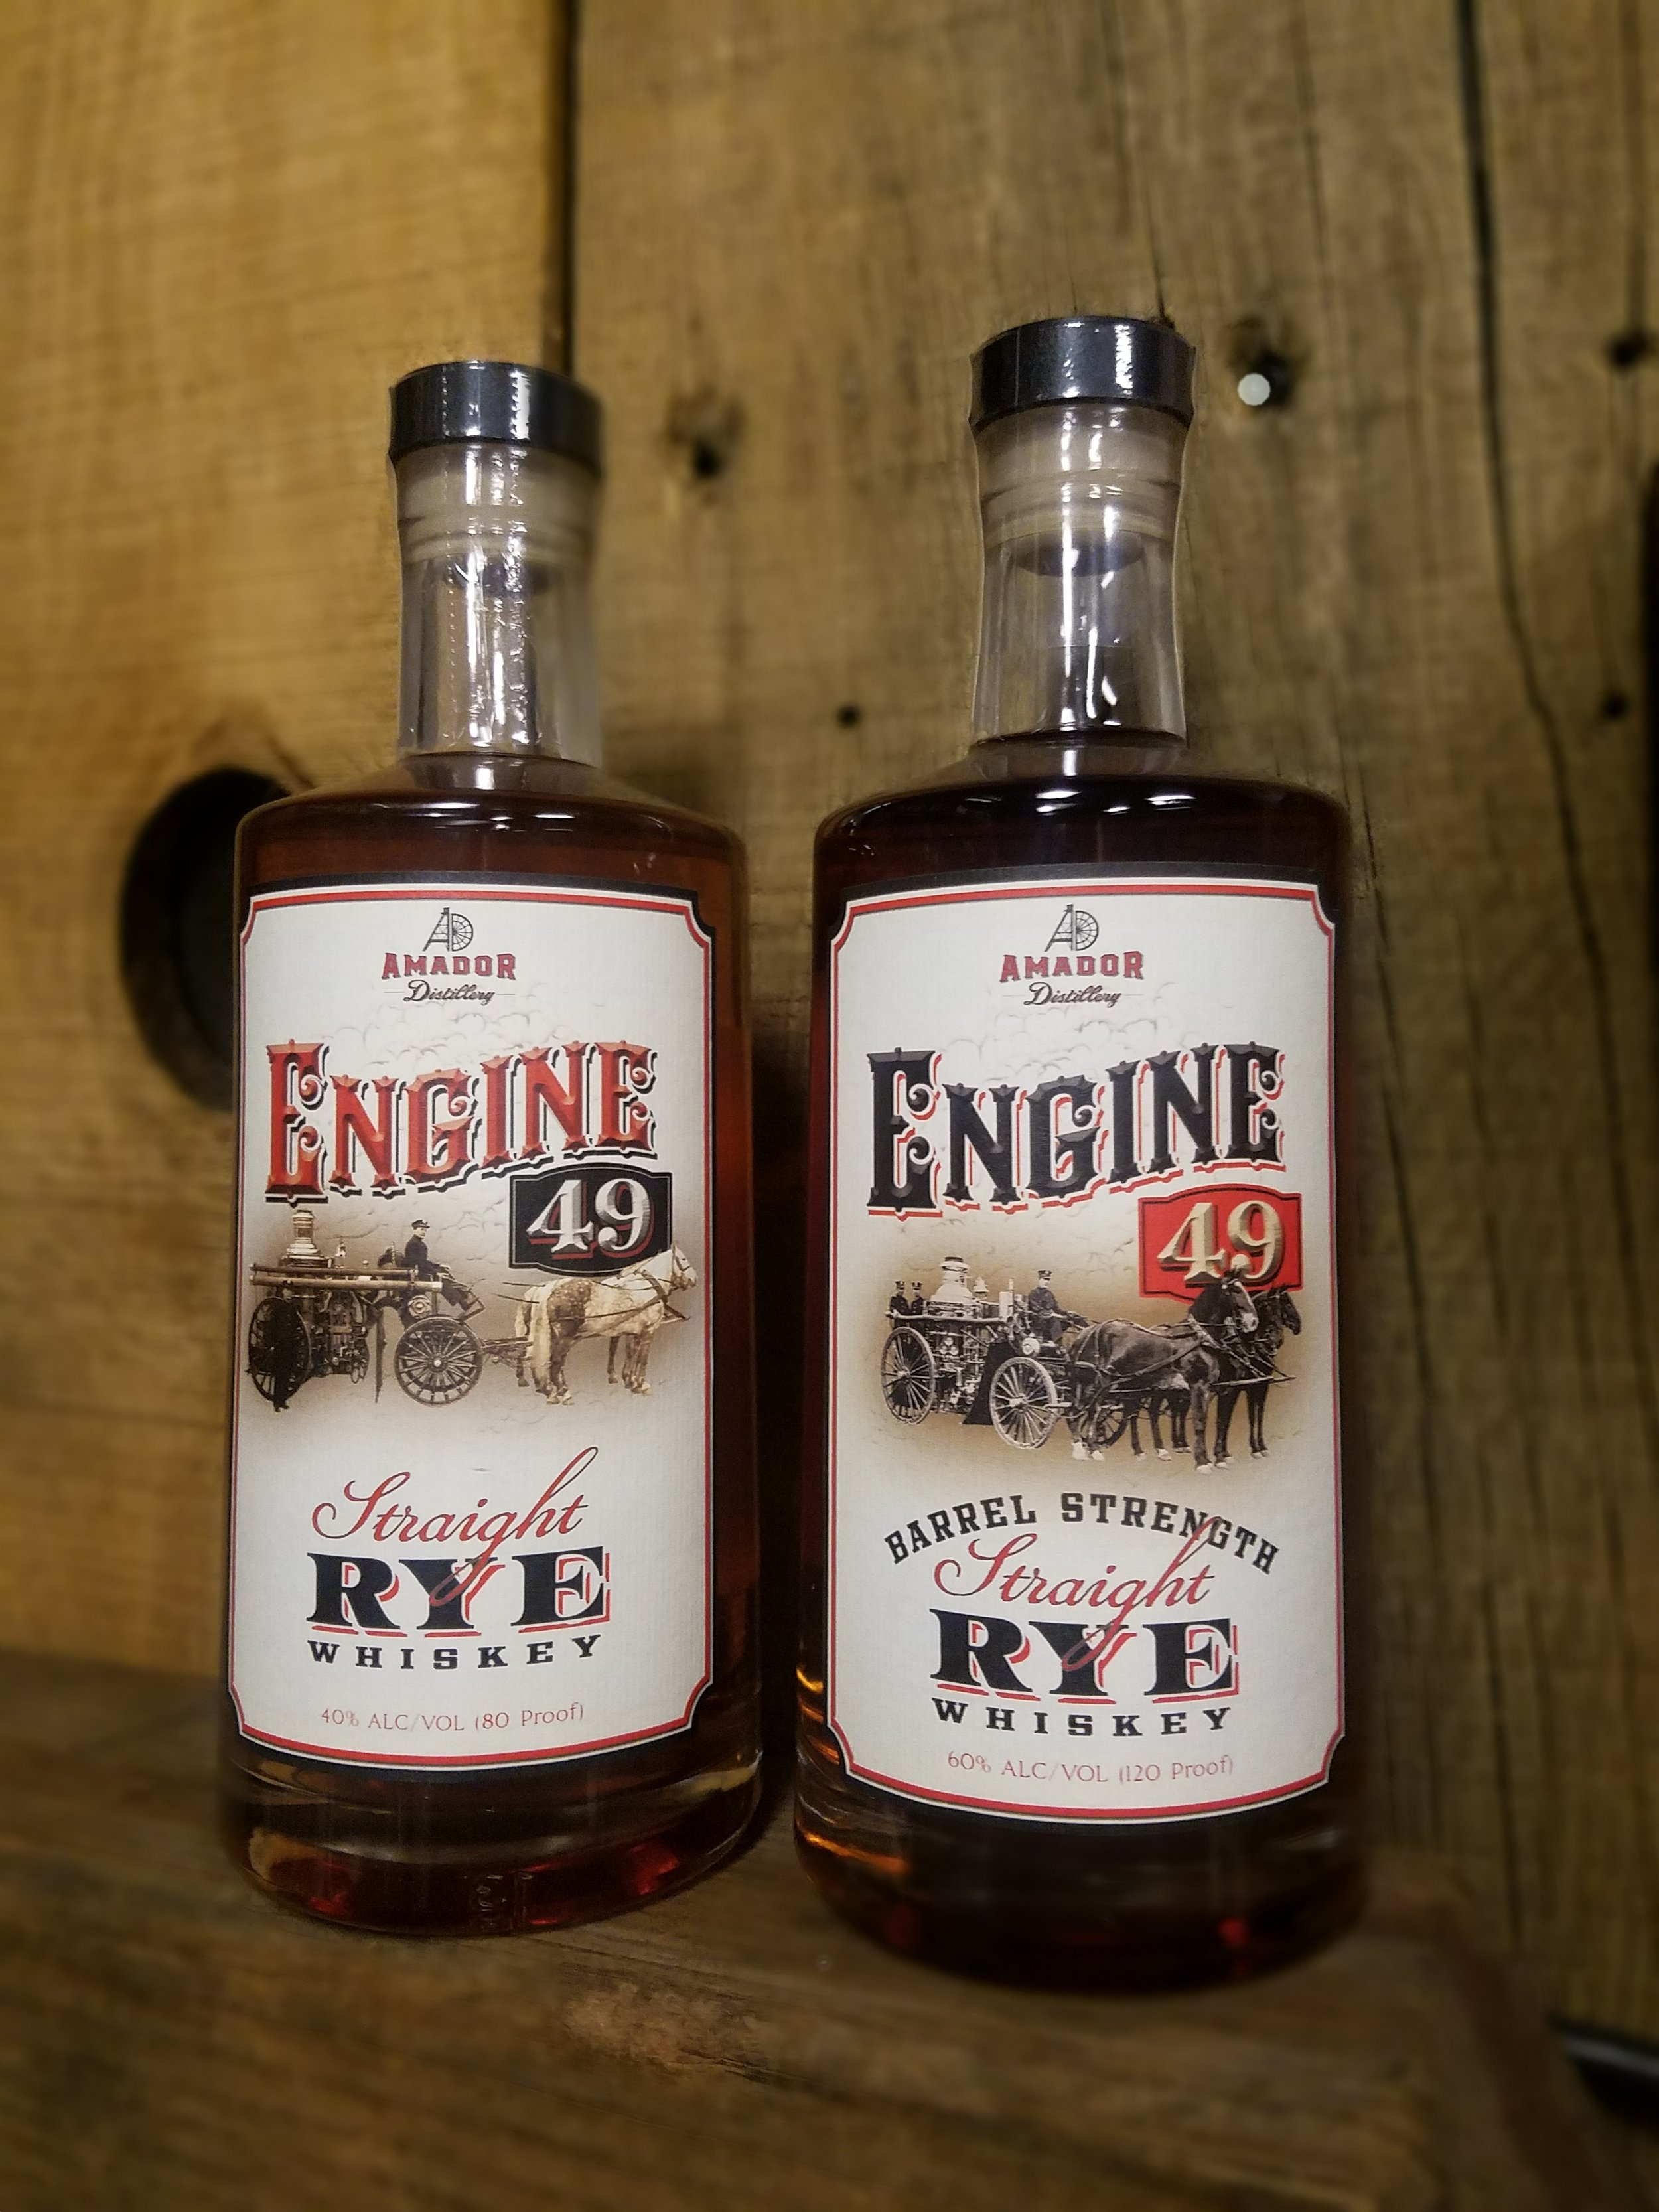 Engine 49 Straight Rye Whiskey - Amador Distillery makes a unique rye whiskey that is nothing but 100% rye on the mash bill. Most other brands have other grains mixed in with their rye mash bill, but that is not our style.Engine 49 80 proof Rye Whiskey is a very easy rye that appeals to whiskey lover and novice spirit drinkers alike. Many visitors to the tasting room start with a